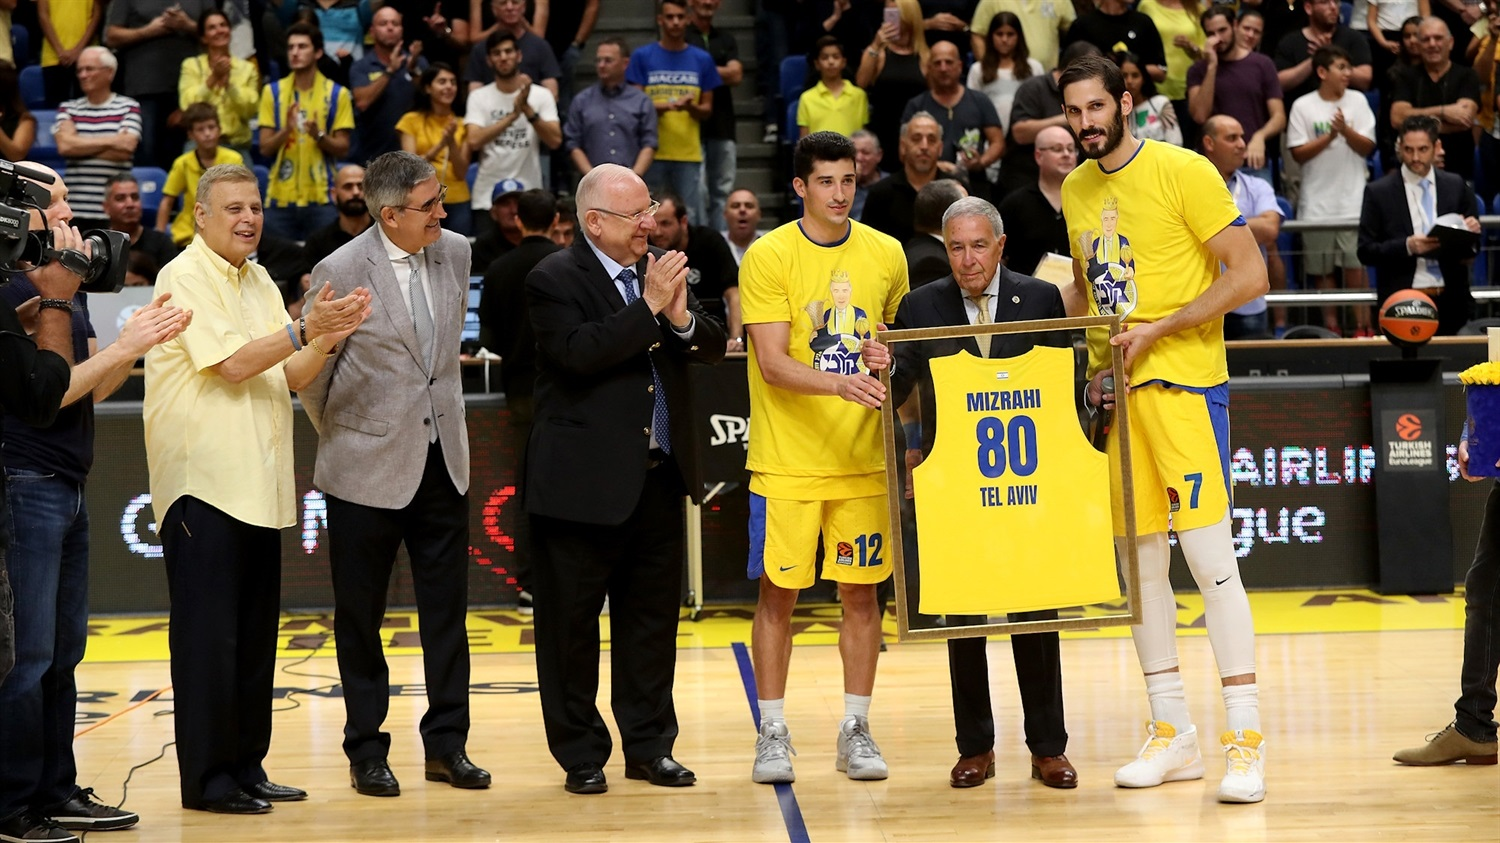 On-court celebration for Maccabi President Shimon Mizrahi - Maccabi FOX Tel Aviv - EB19